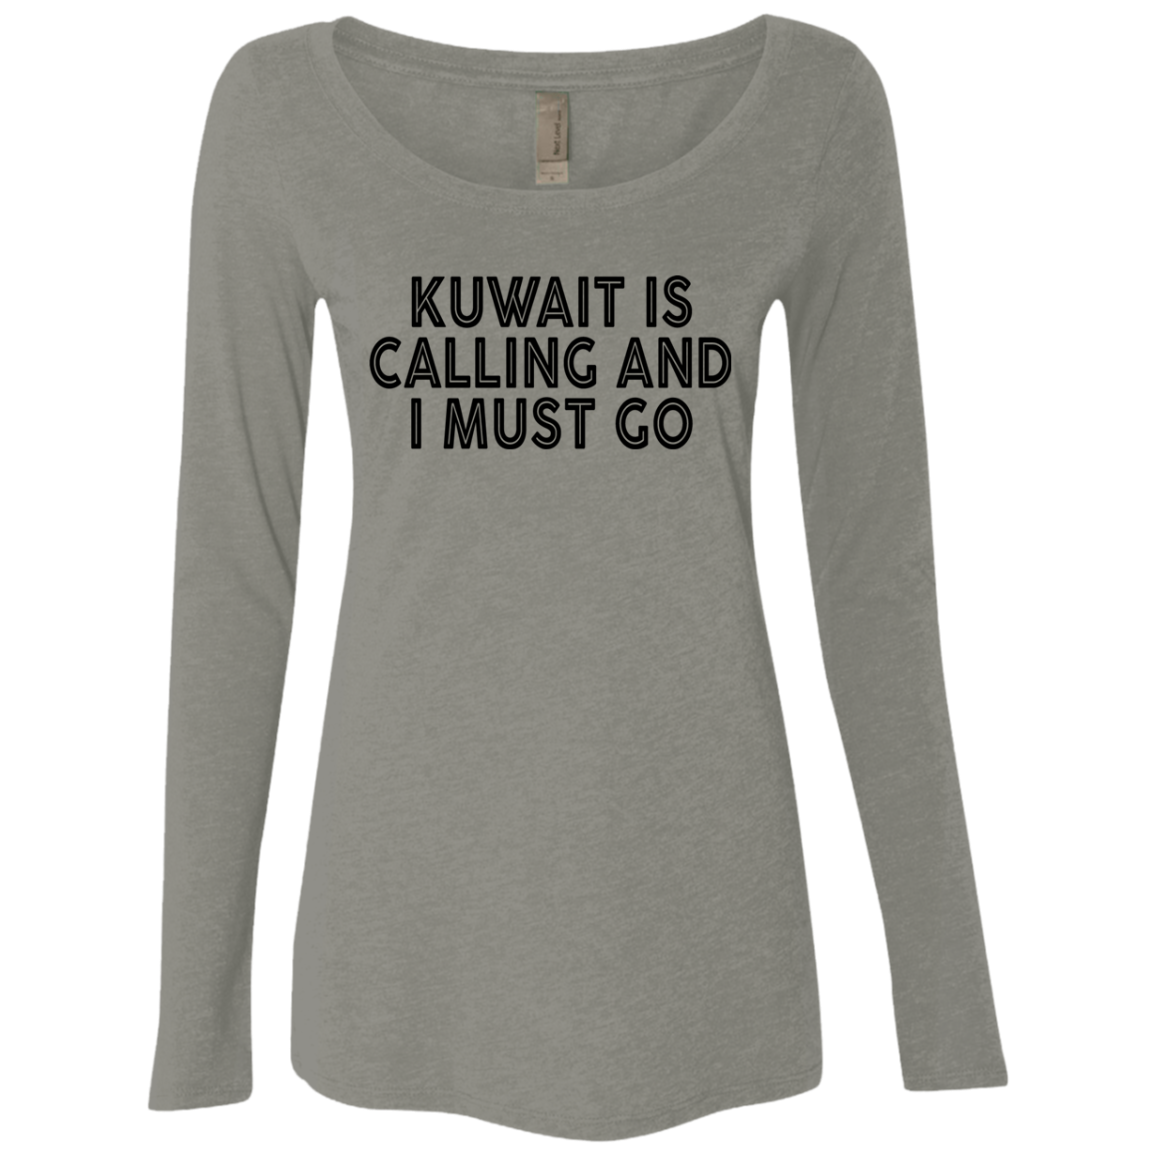 Kuwait Is Calling And I Must Go Women's Long Sleeve Tee